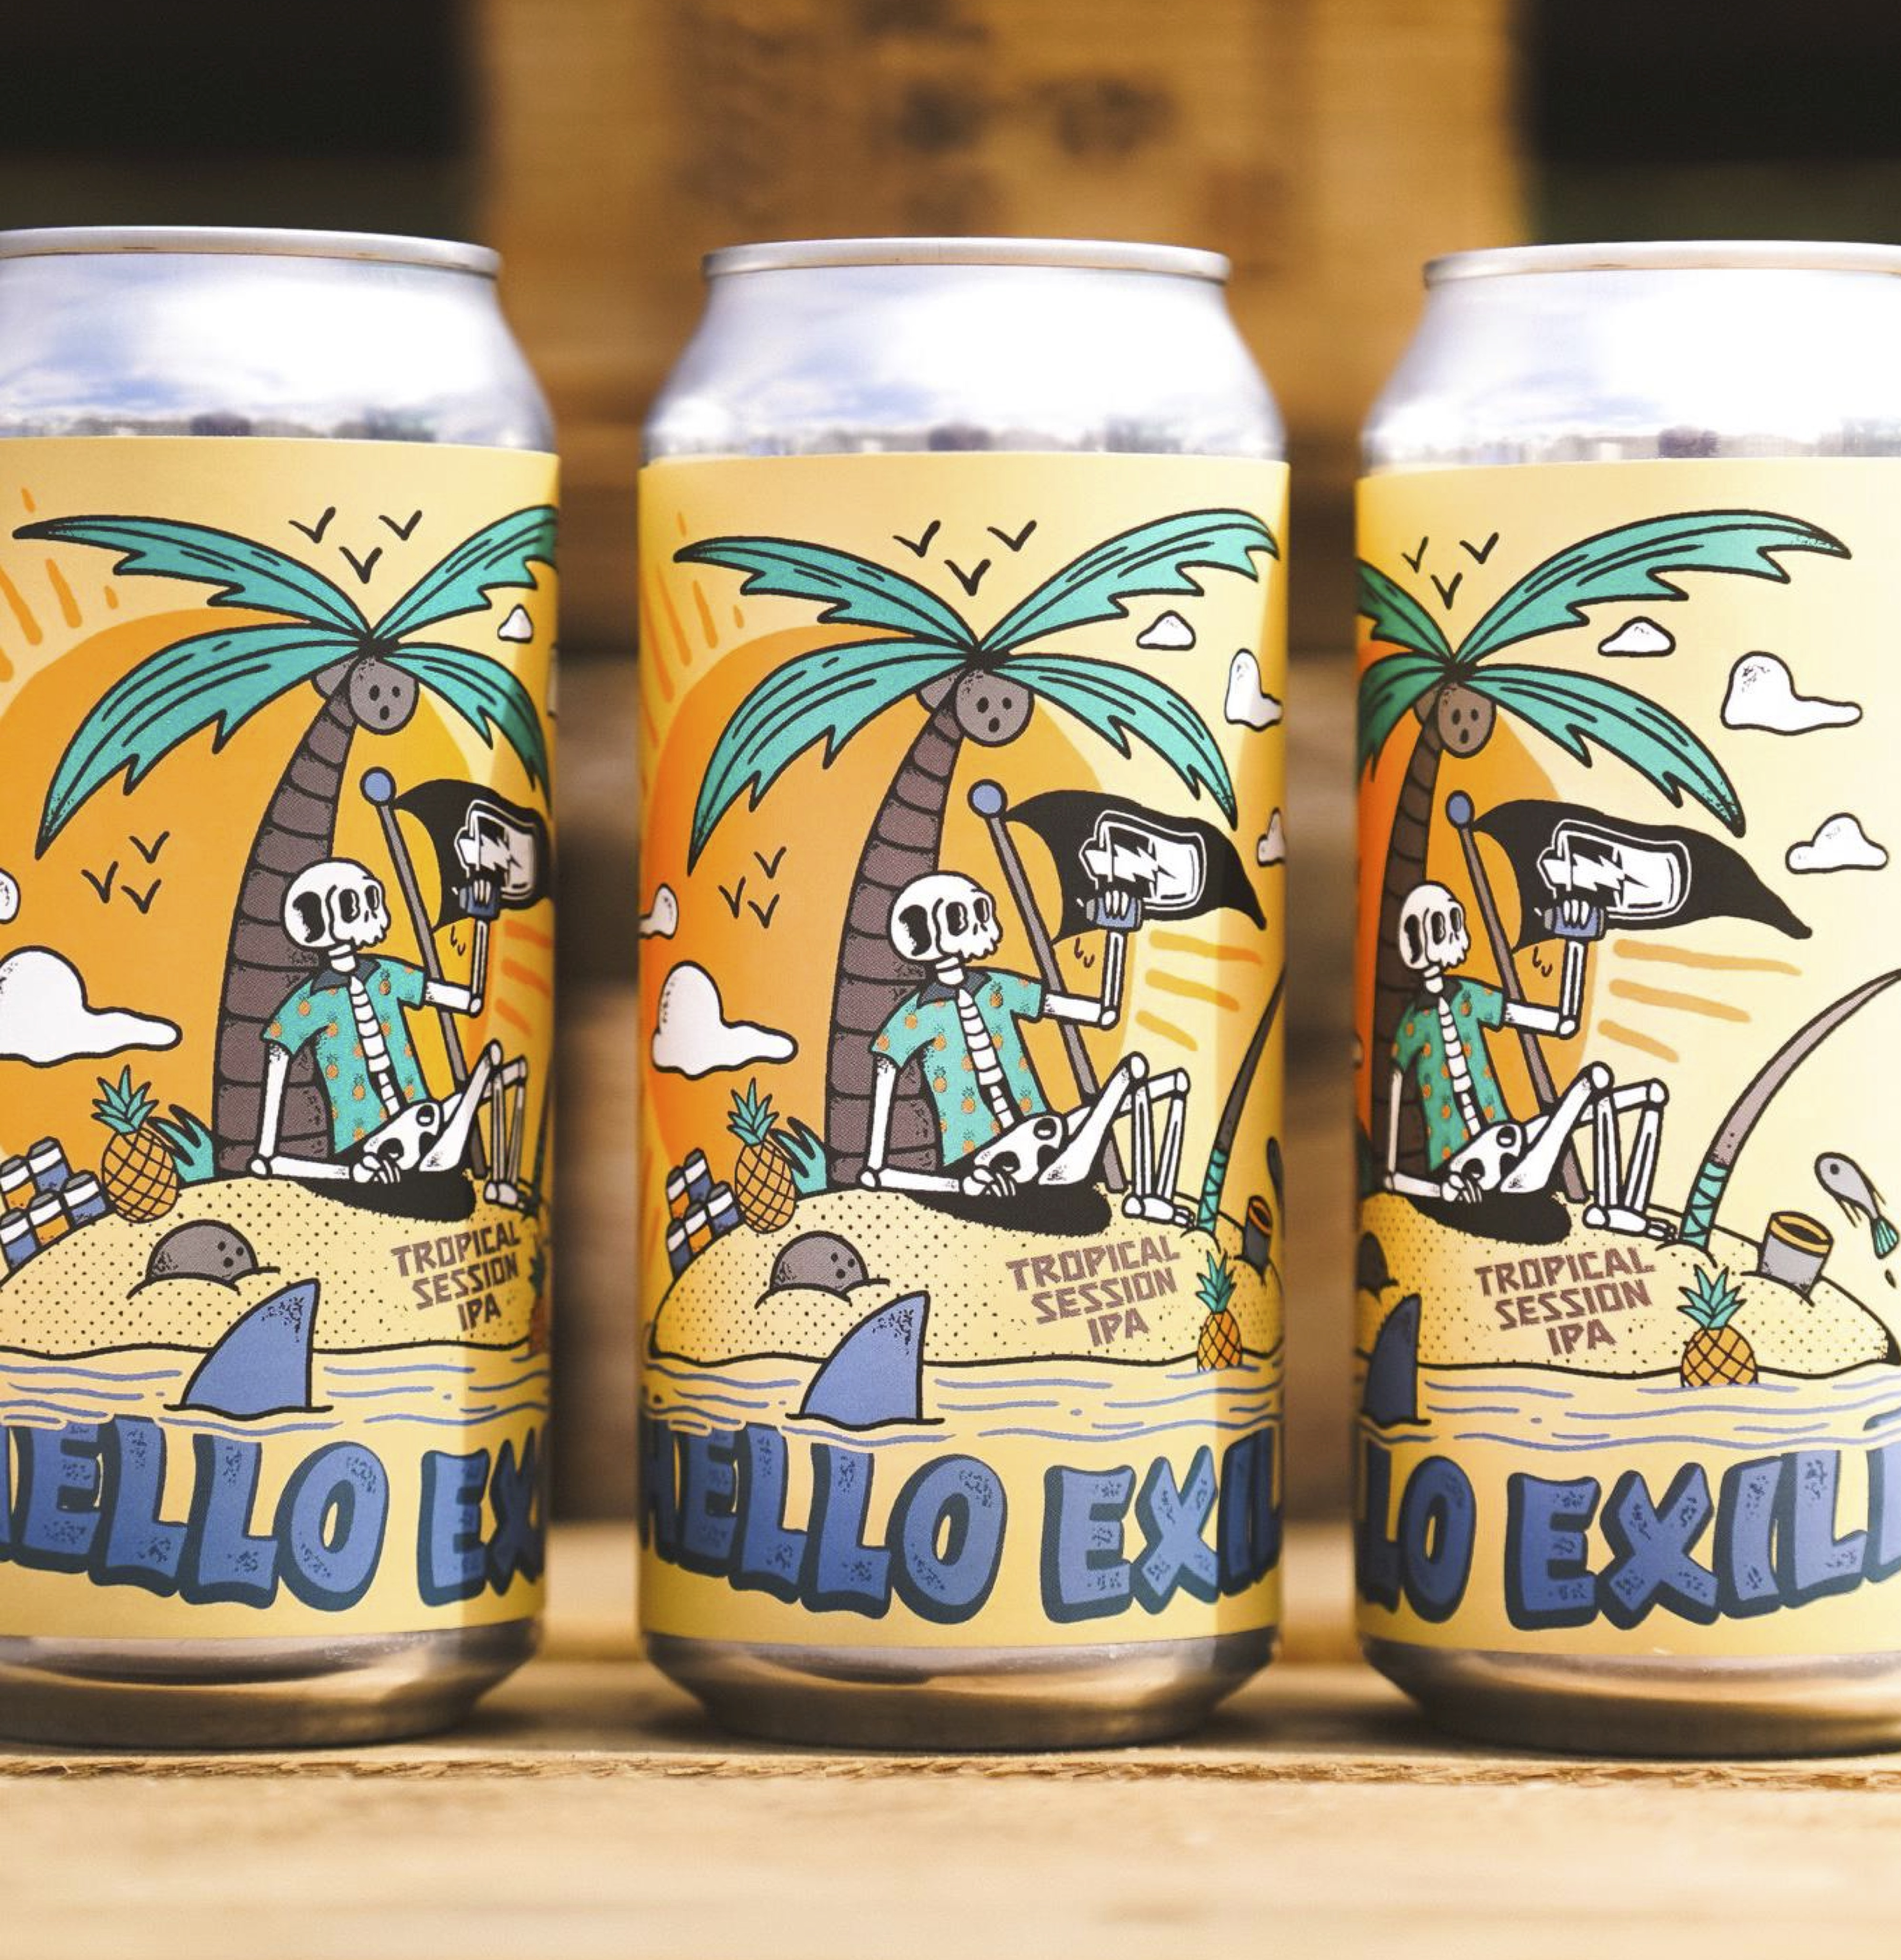 True Brew - Hello Exile Session IPA 4.5% 440 can